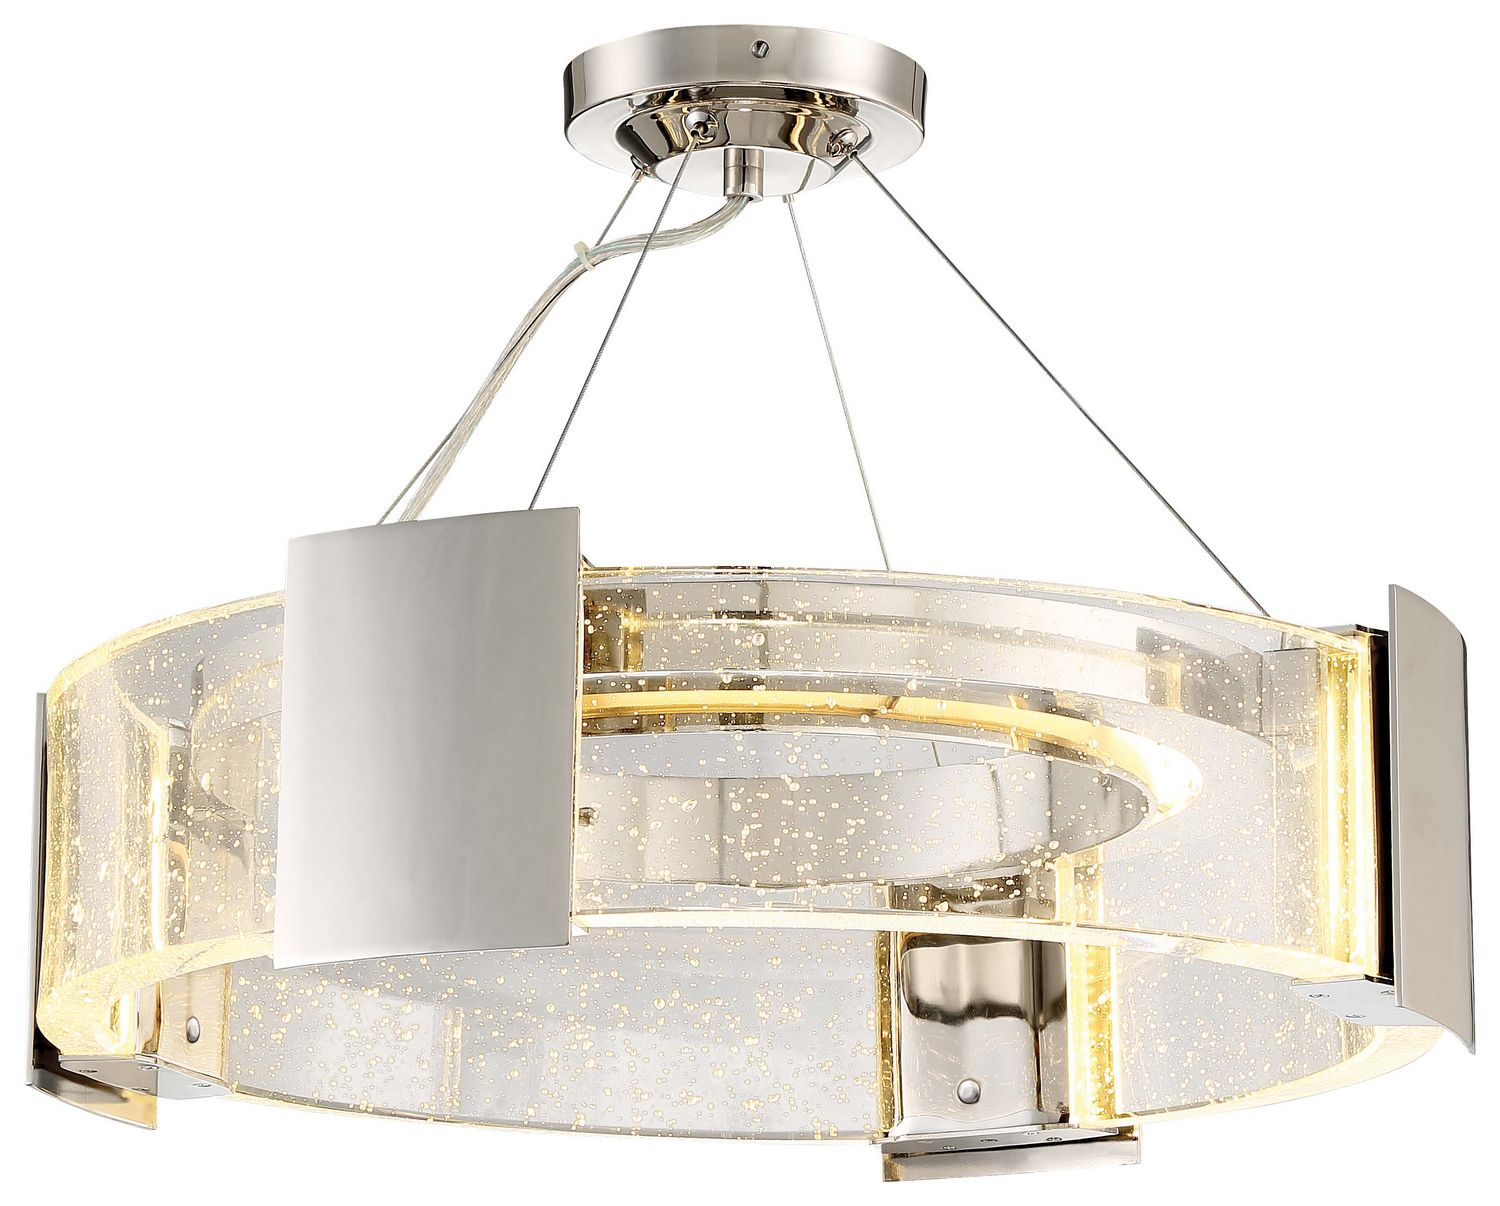 LED Semi Flush Mount Modern Lighting Fixture | Allied Lighting ...